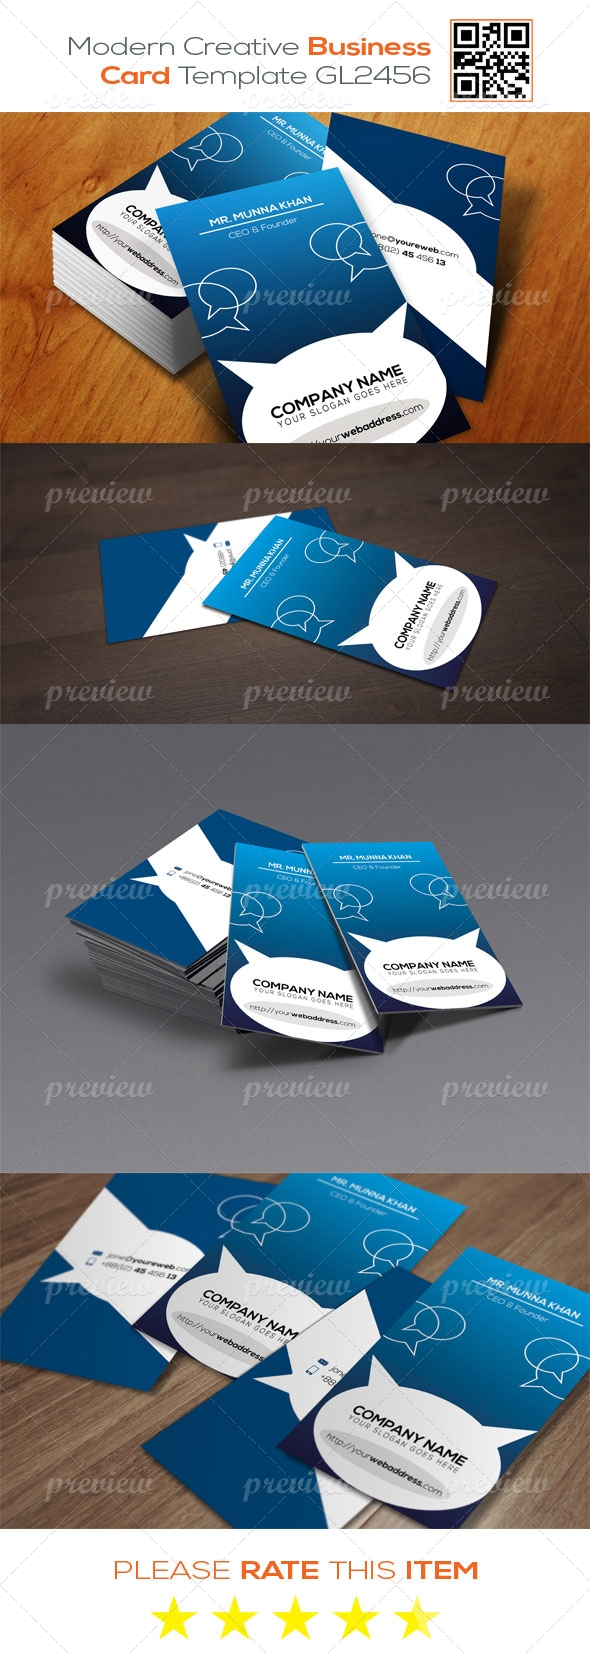 Modern  Creative Business Card Template GL2456